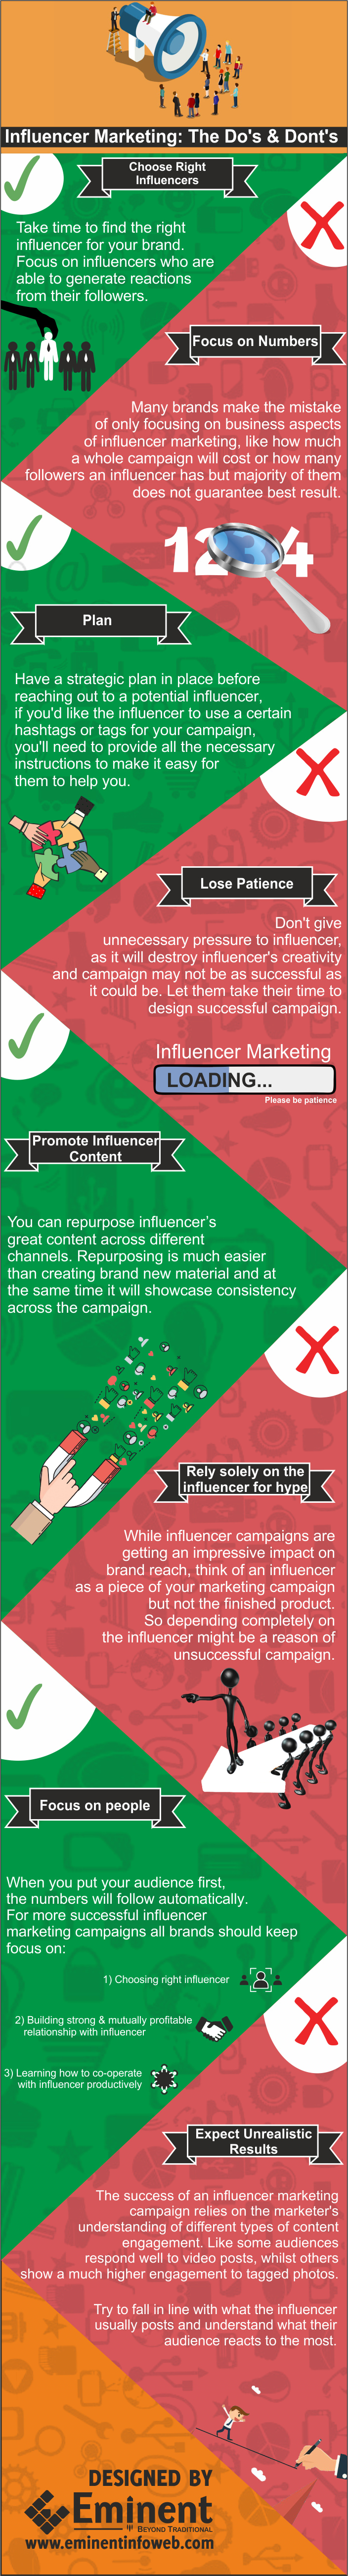 DO's & Don'ts for Influencer Marketing Infographic